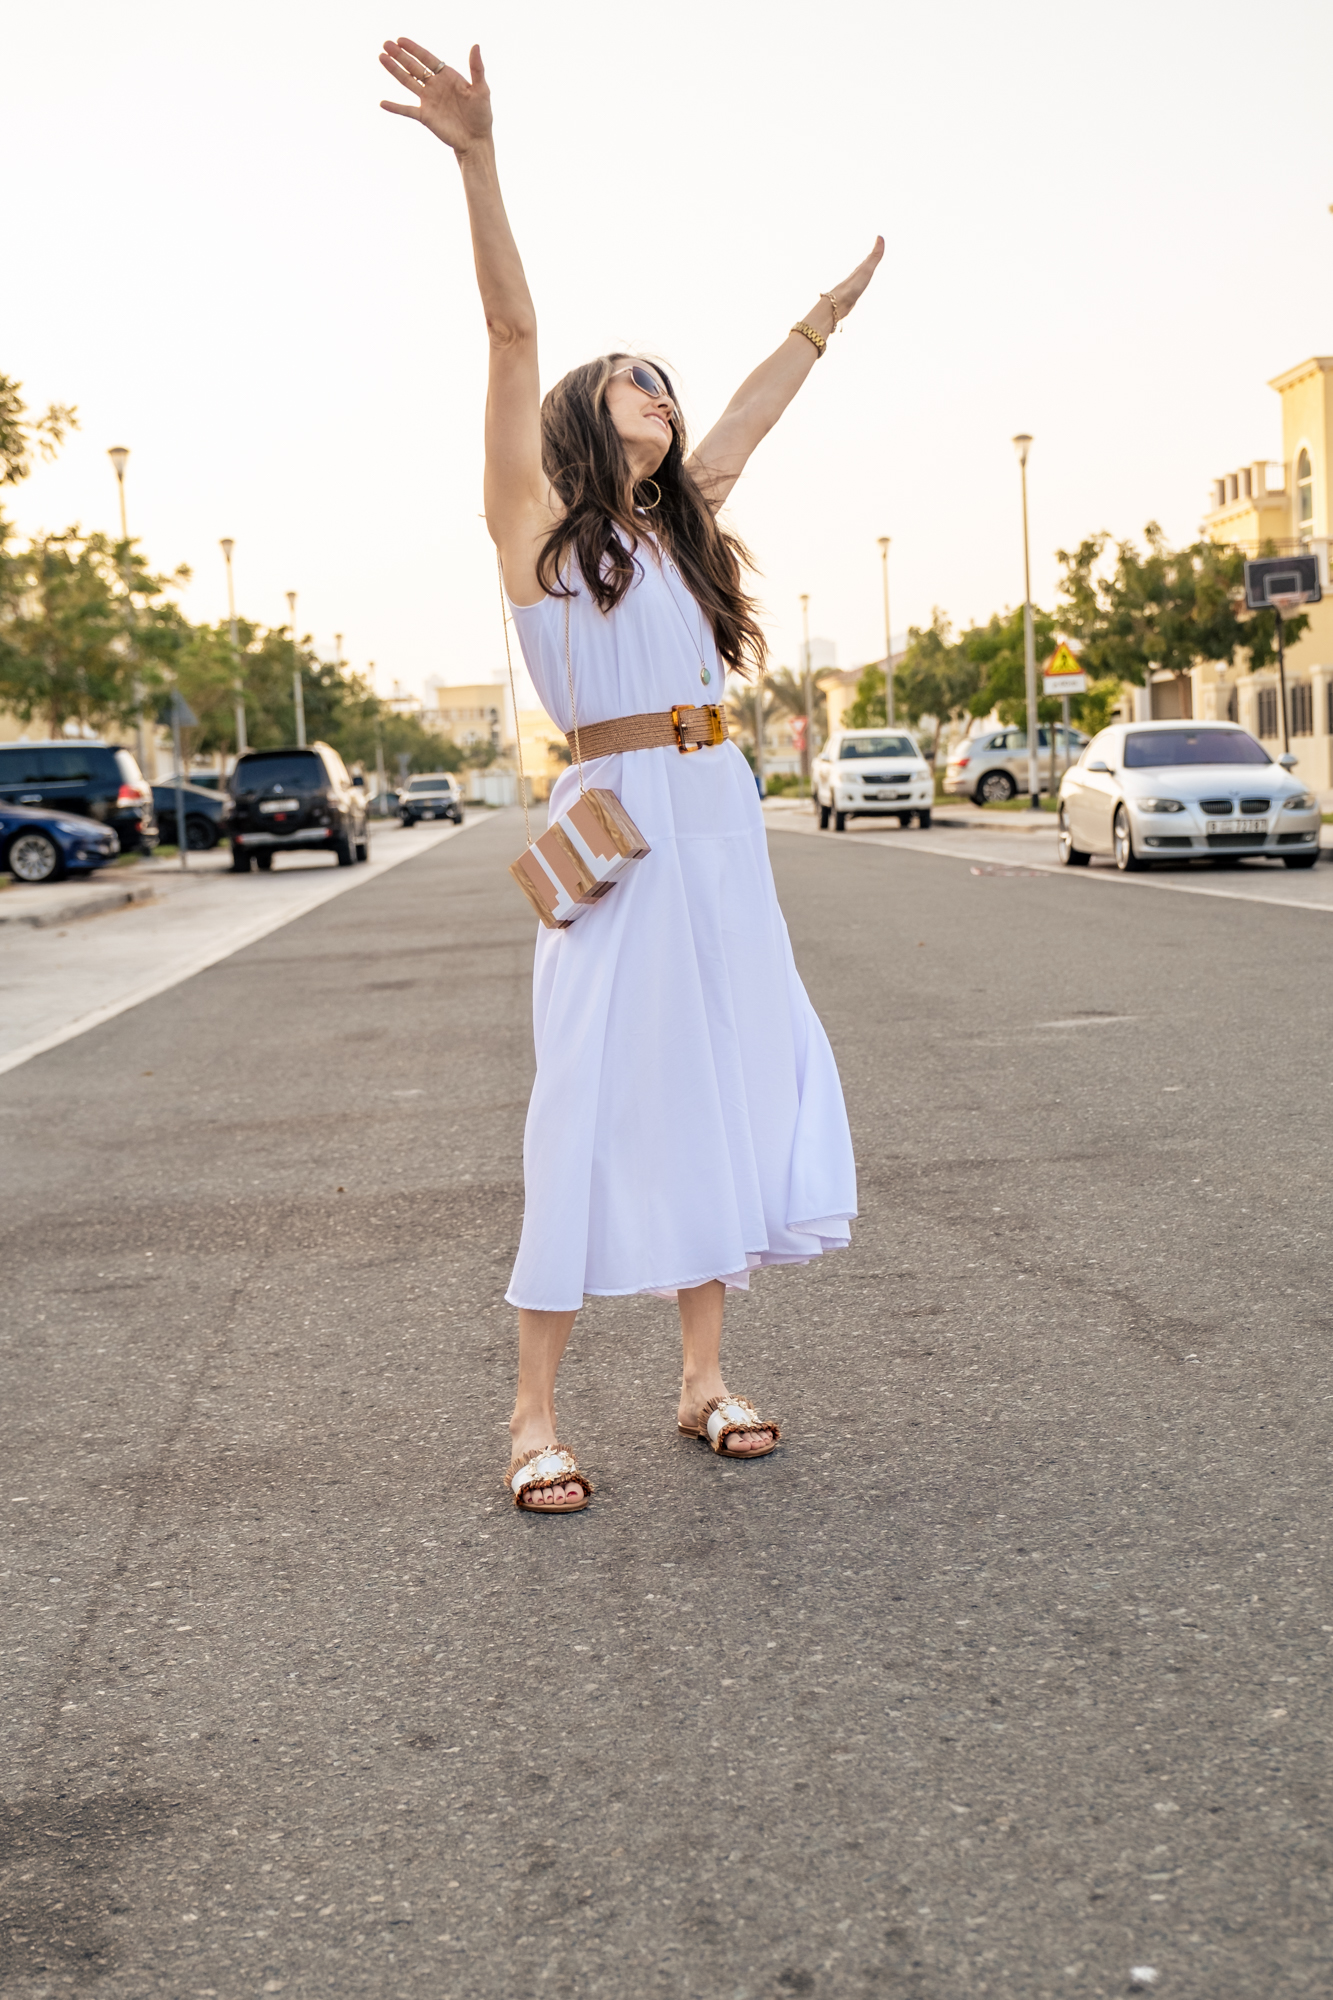 Standing in the street, hands up, face to the sky smiling